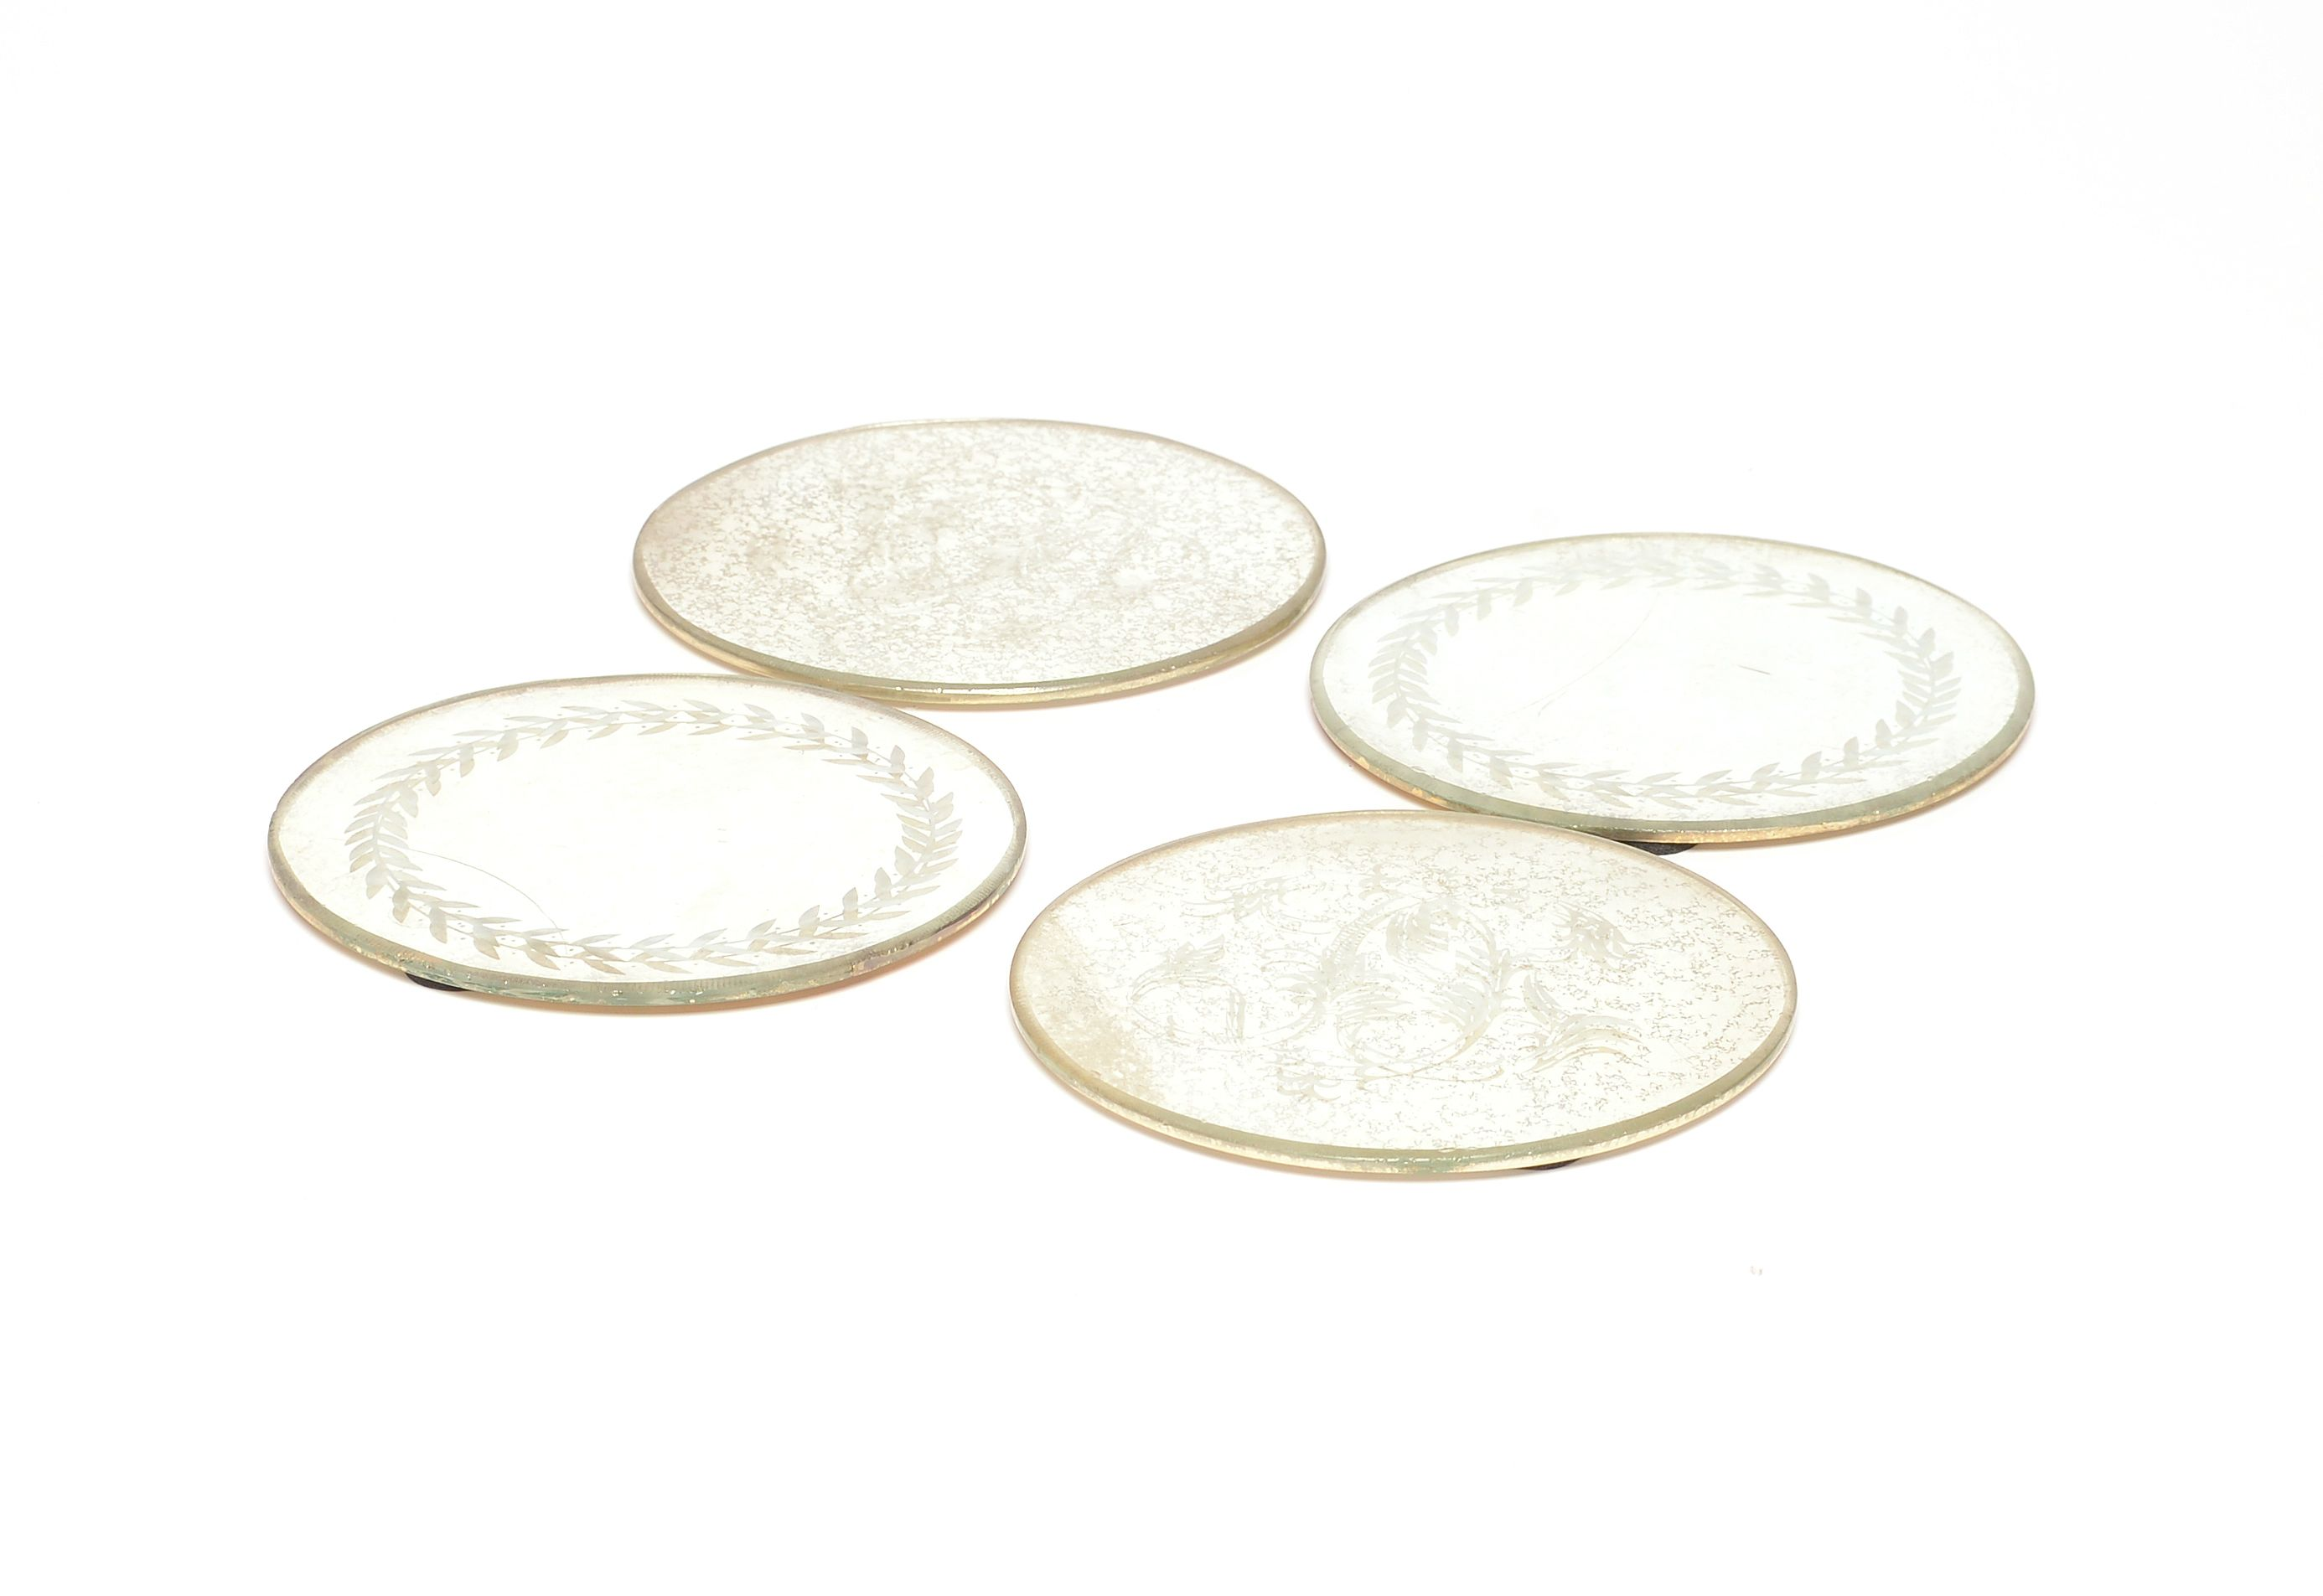 Round Coasters with Decoration Image